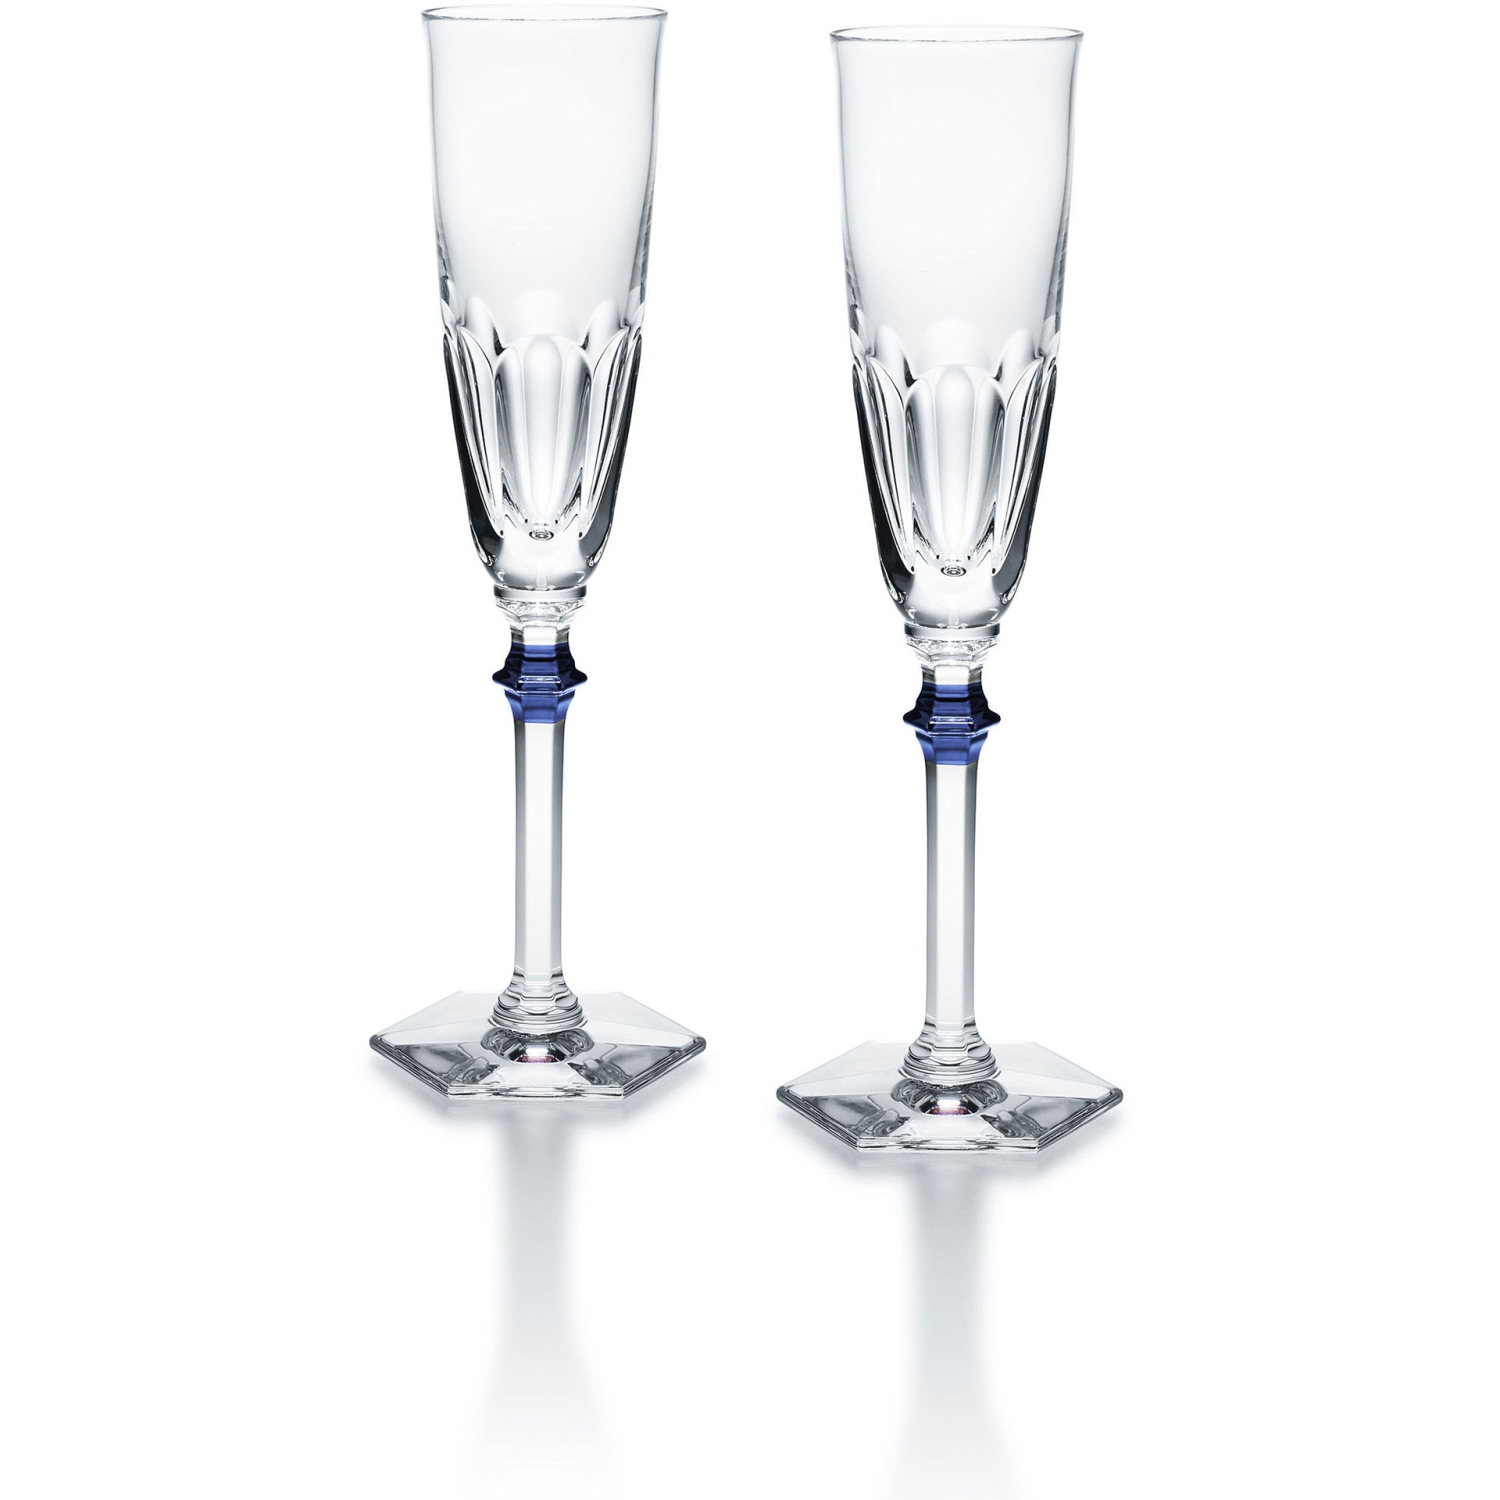 Baccarat Champagne flute Collection